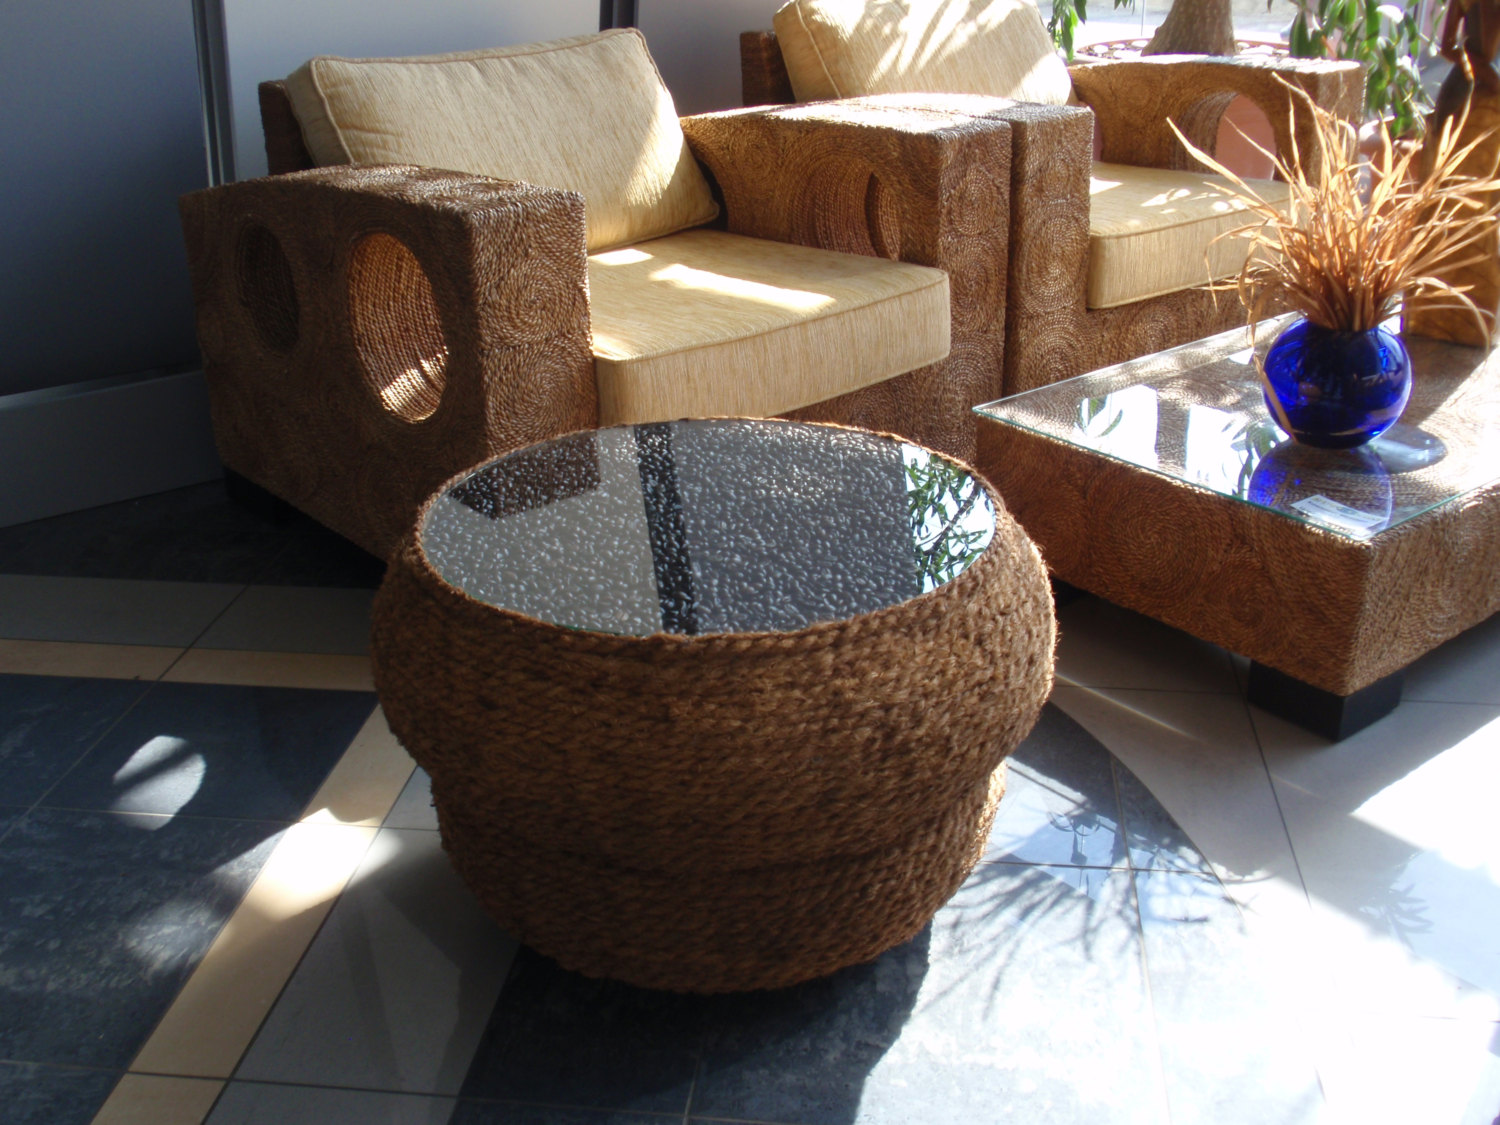 Coffee table made by 2 recycled motorcycle tyres coconut rope and